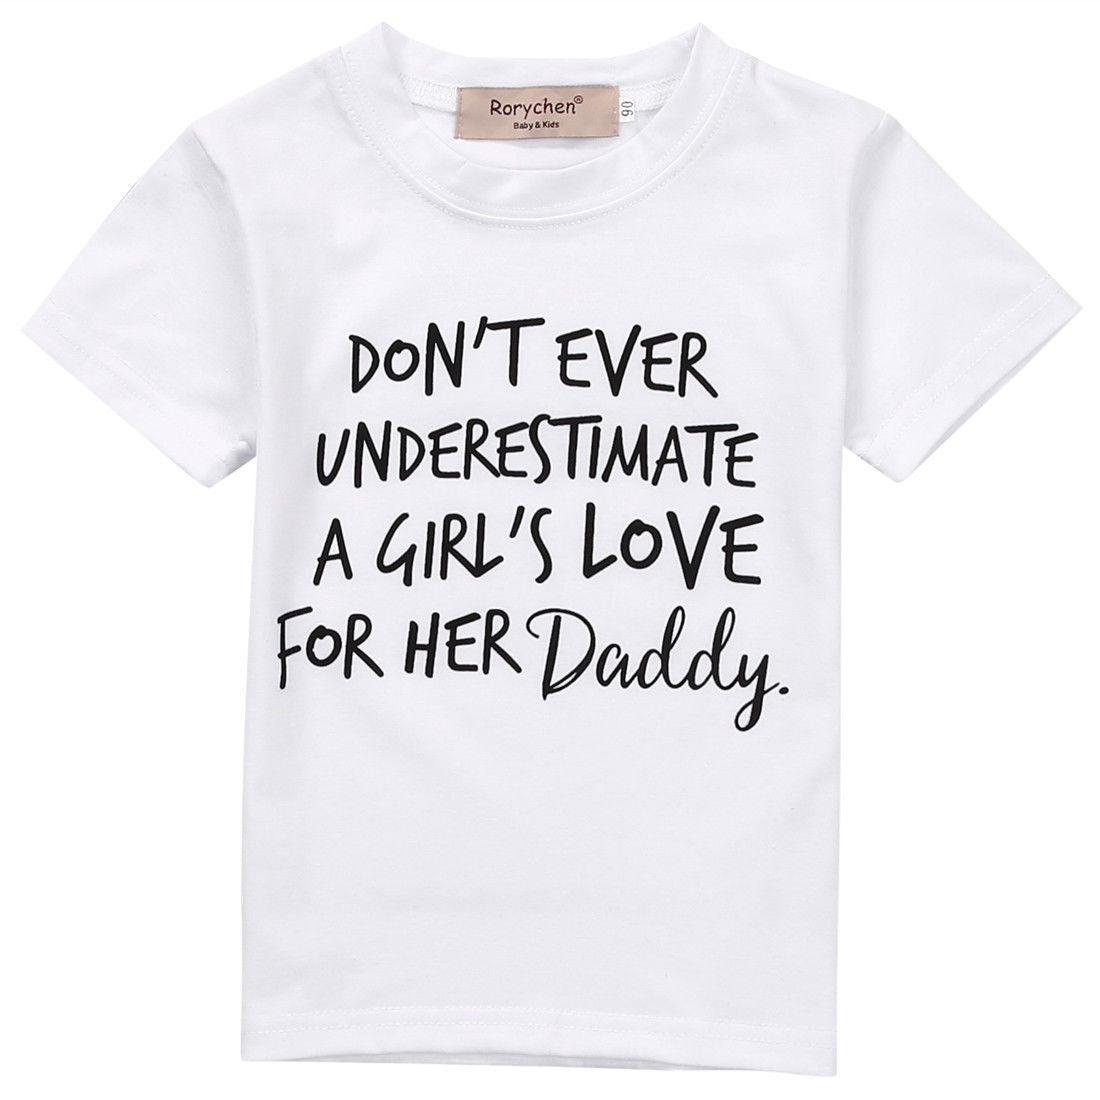 Children Clothes White T-shirt Kids Baby Boys Girls Daddy's Love Printed Tees Cotton Short Sleeve Boy Girl T-shirts Tops